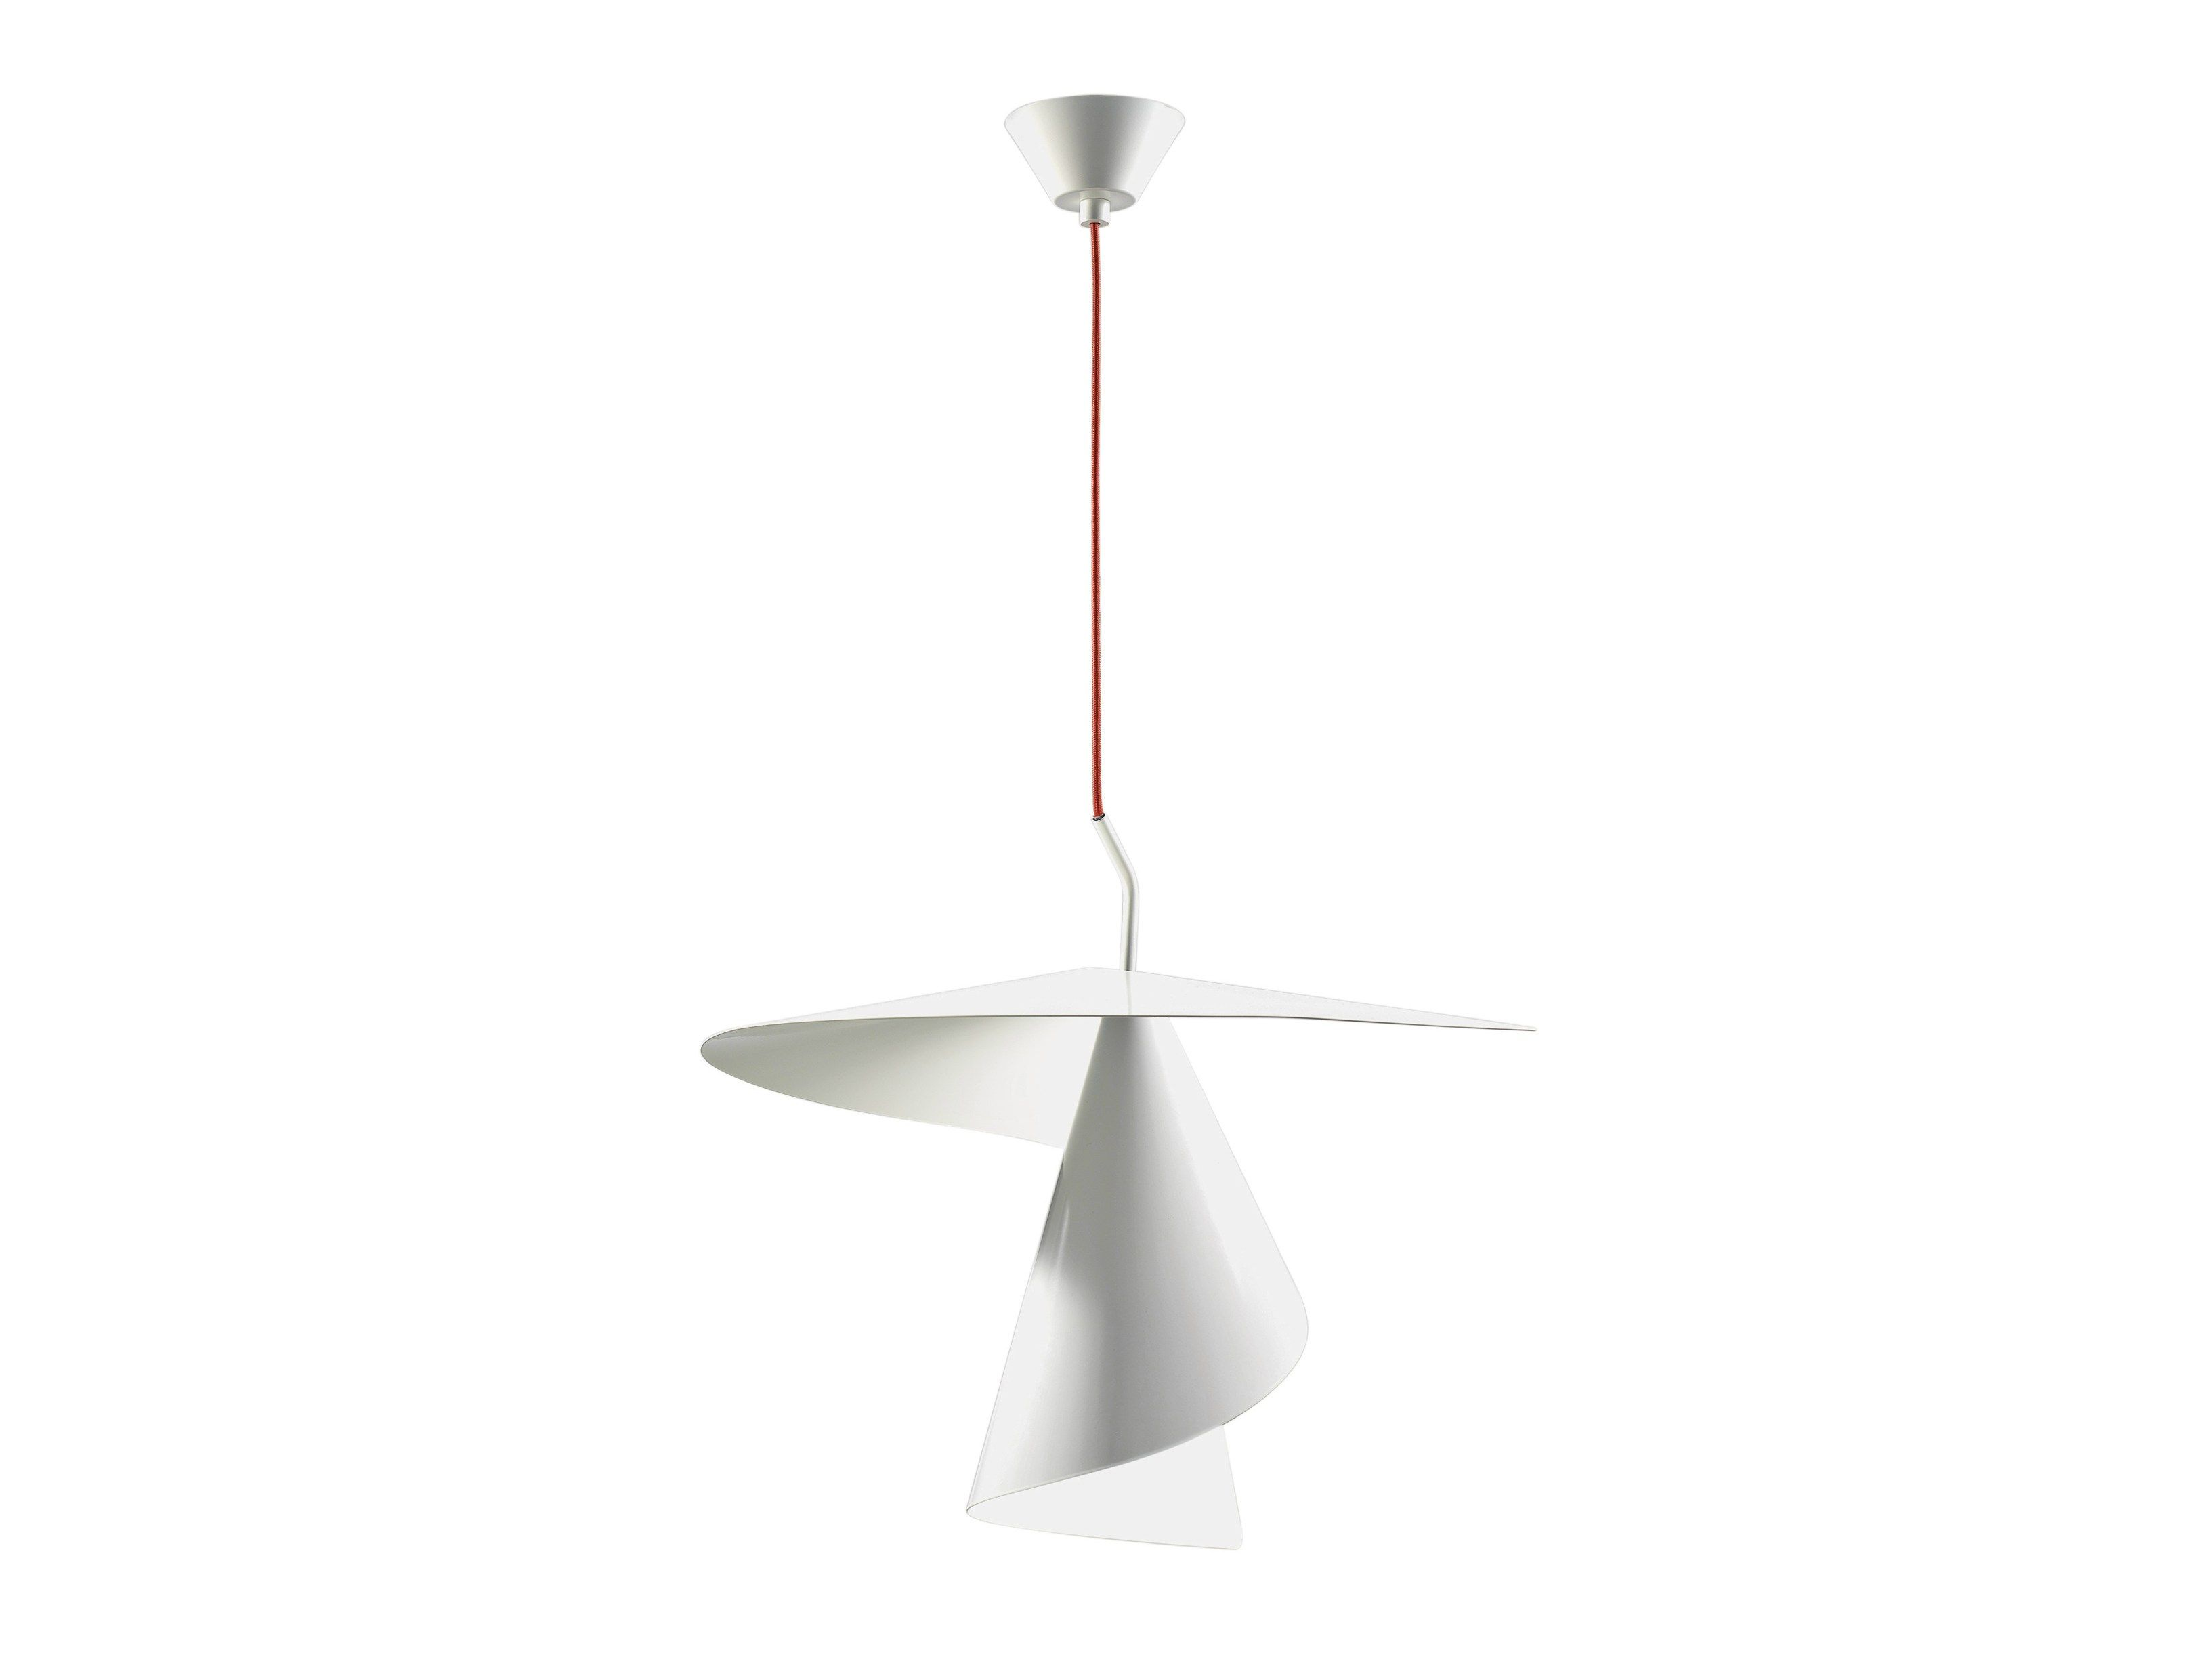 SUSPENSION EN ALUMINIUM DESIGN SPIRY LIGNE AXO LIGHT BY AXO LIGHT